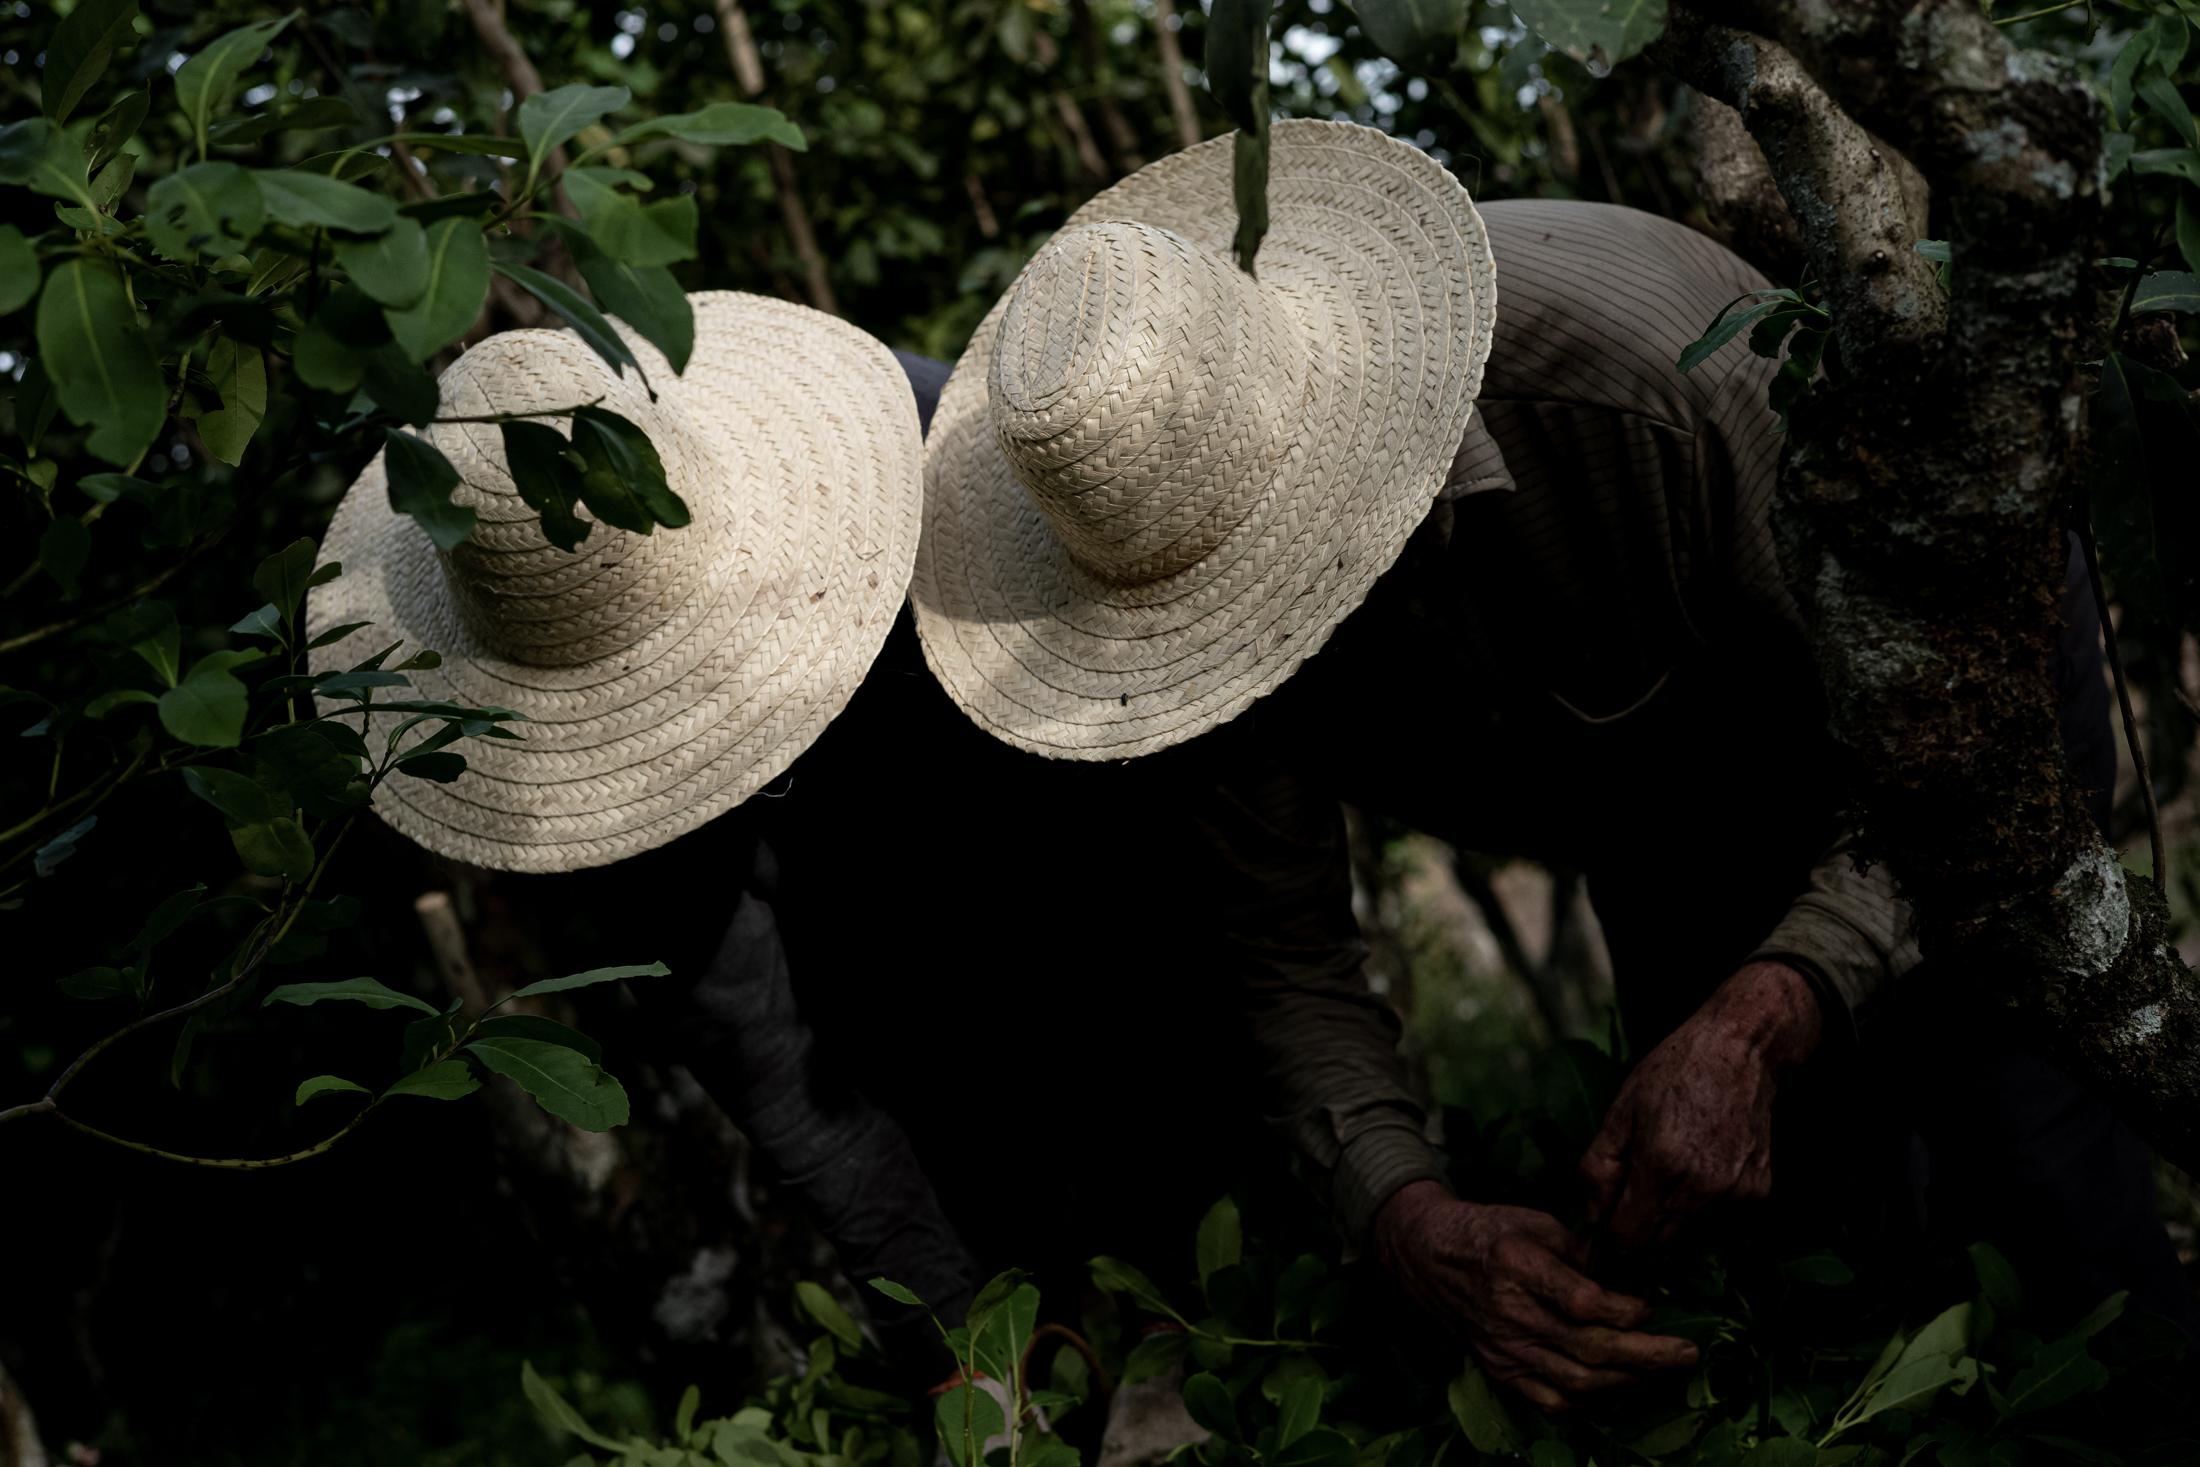 Farmer Nelson Gaspareto Damo and your son Douglas Meazza Damo, picks yerba mate leaves on his property. Yerba mate consumption is an icon in the culture of the southernmost peoples of Latin America. Especially southern Brazil (Paraná and Rio Grande do Sul), Argentina and Uruguay.